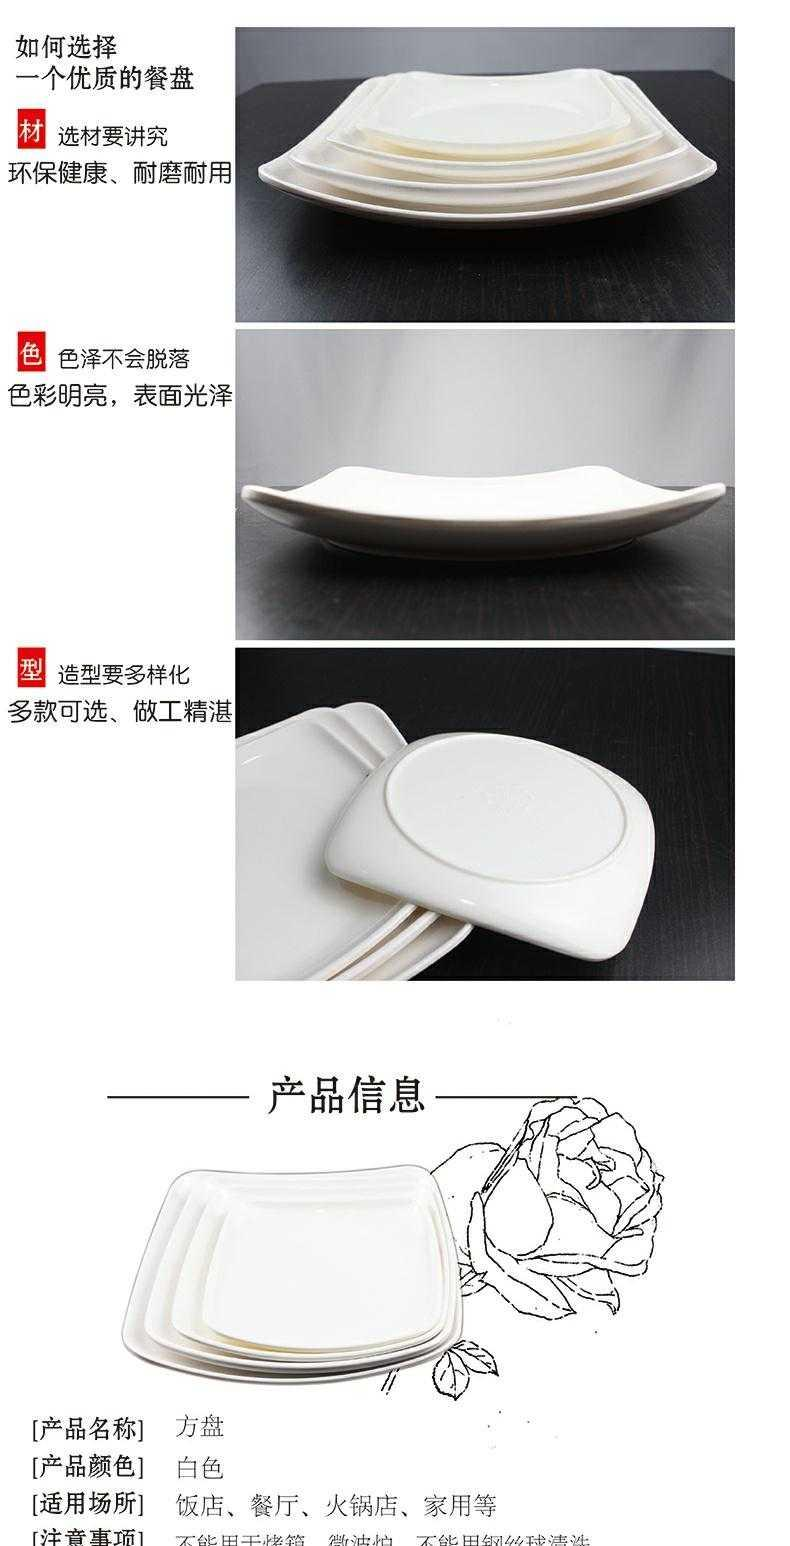 Flat fast with 2 plastic tray are cooking western food plate plate plate of melamine imitation porcelain square plate